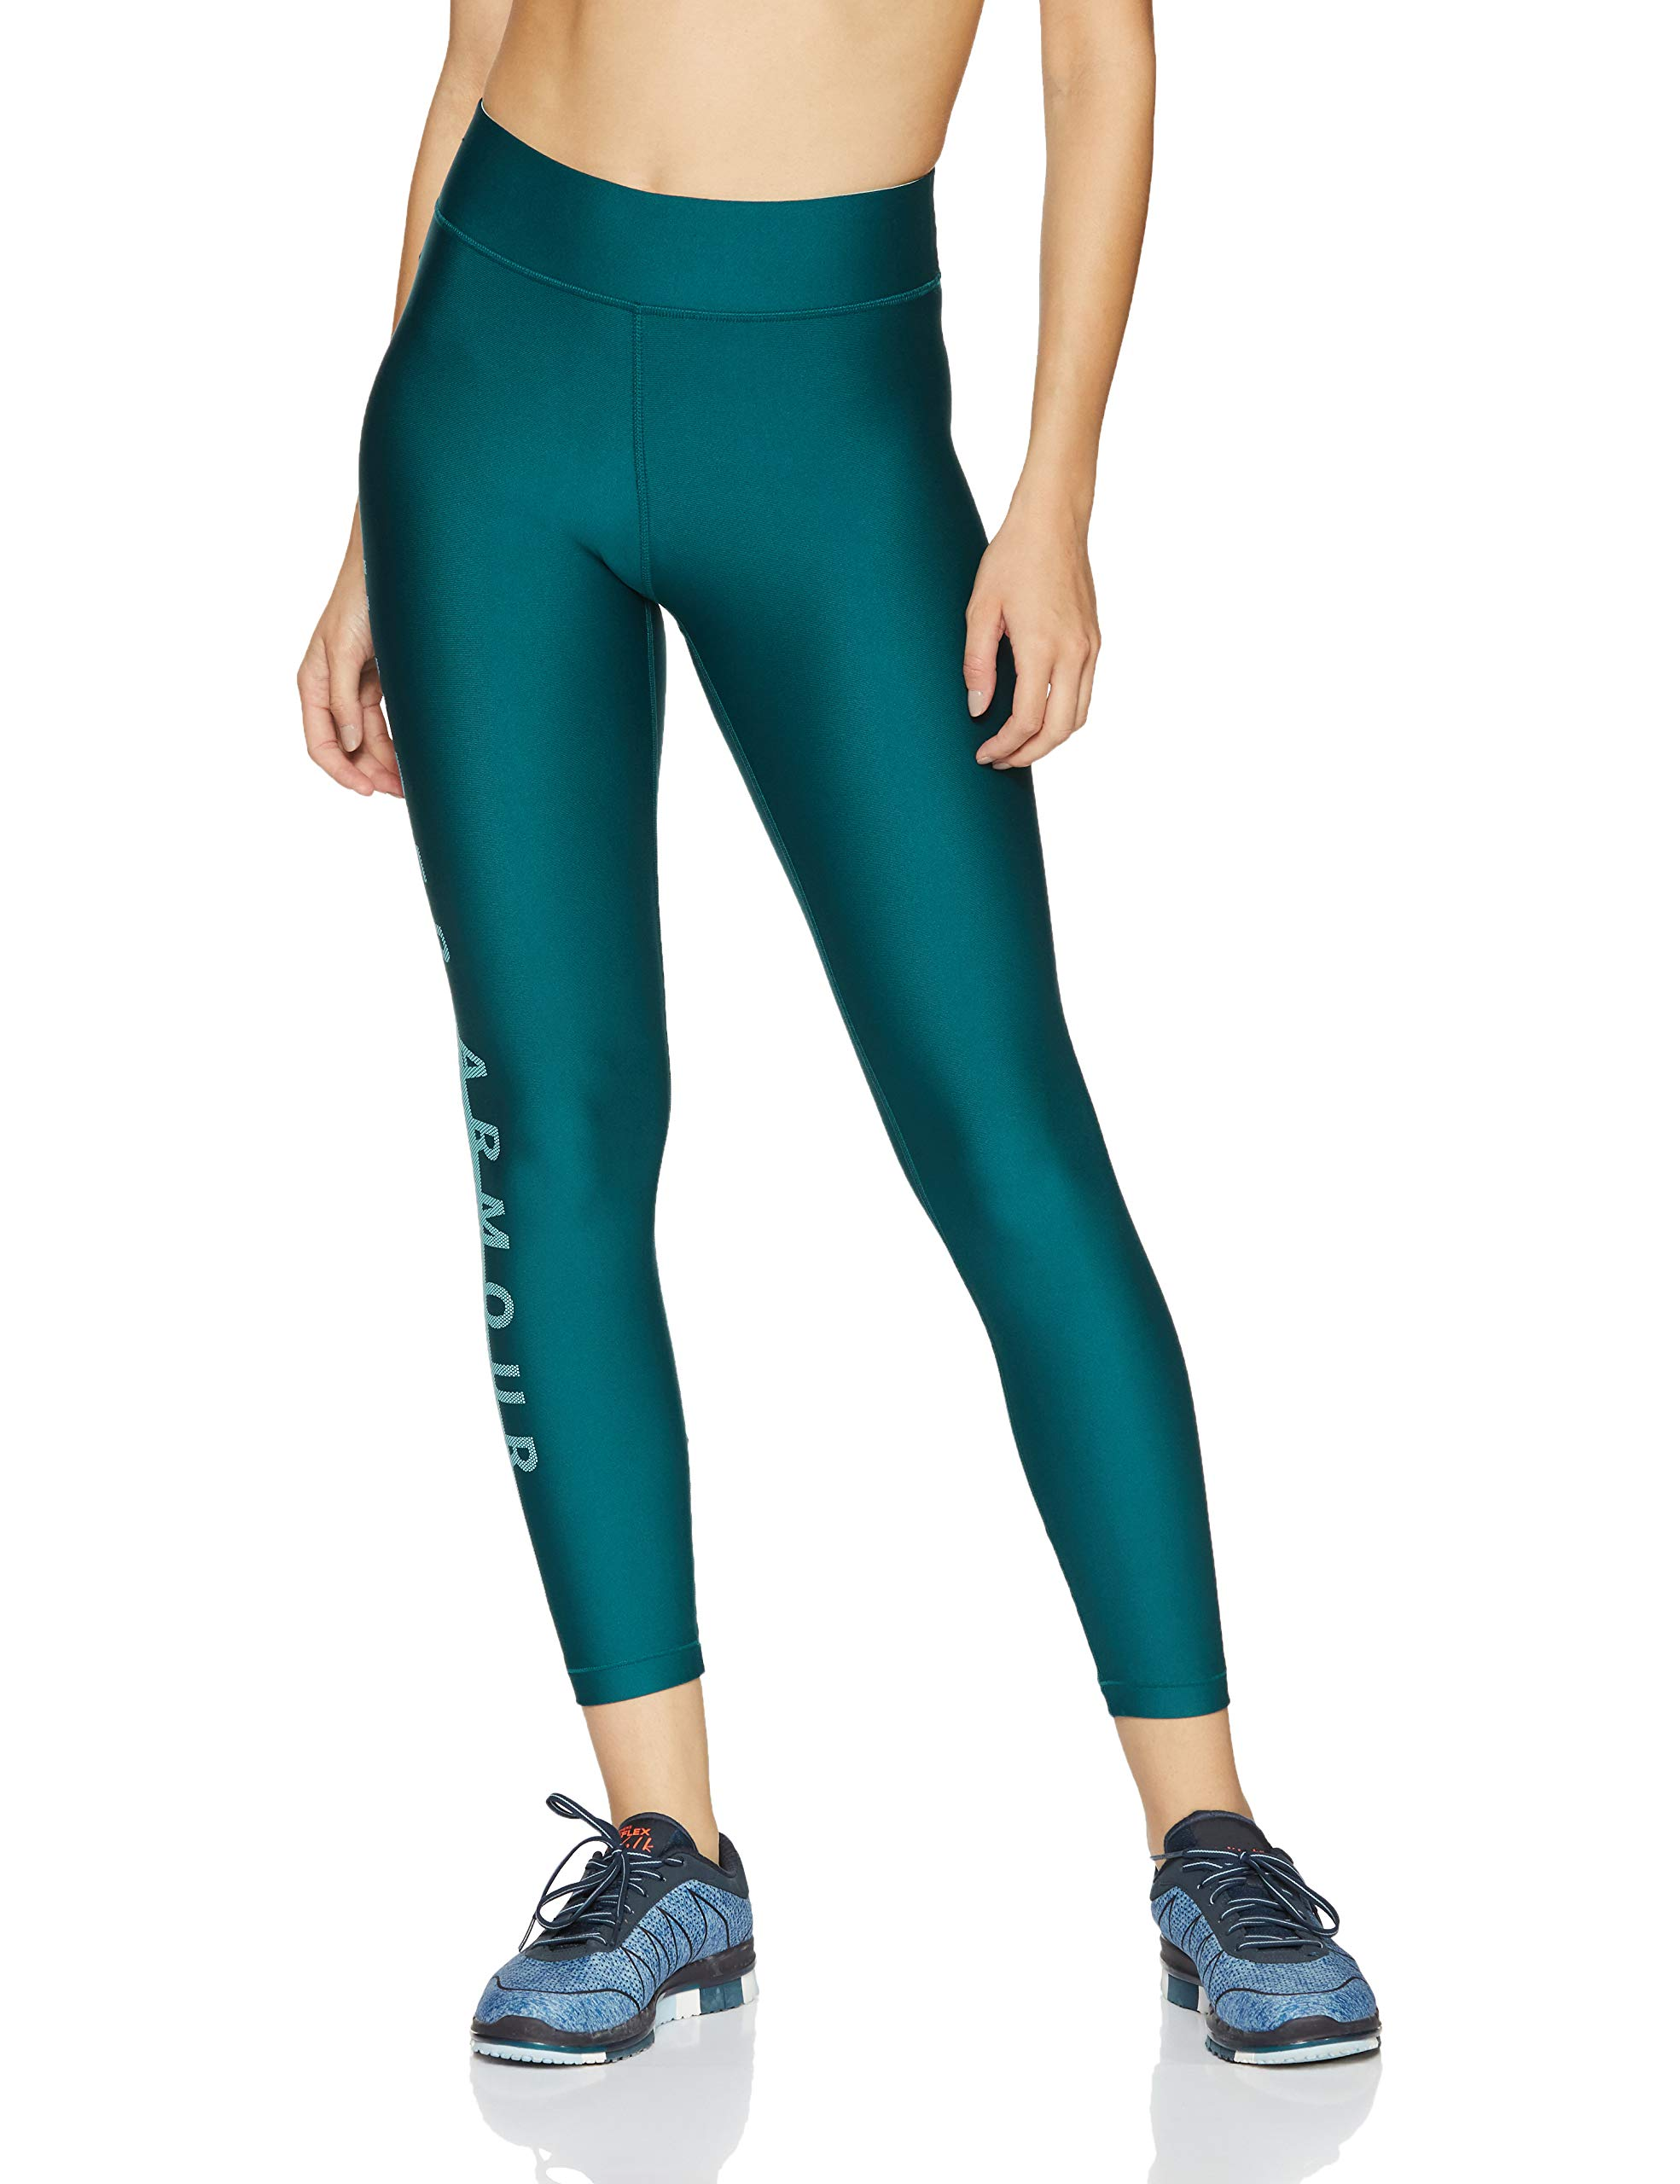 Under Armour Women's HeatGear Armour Branded Ankle Crop, Tourmaline Teal (716)/Metallic Silver, Large by Under Armour (Image #1)